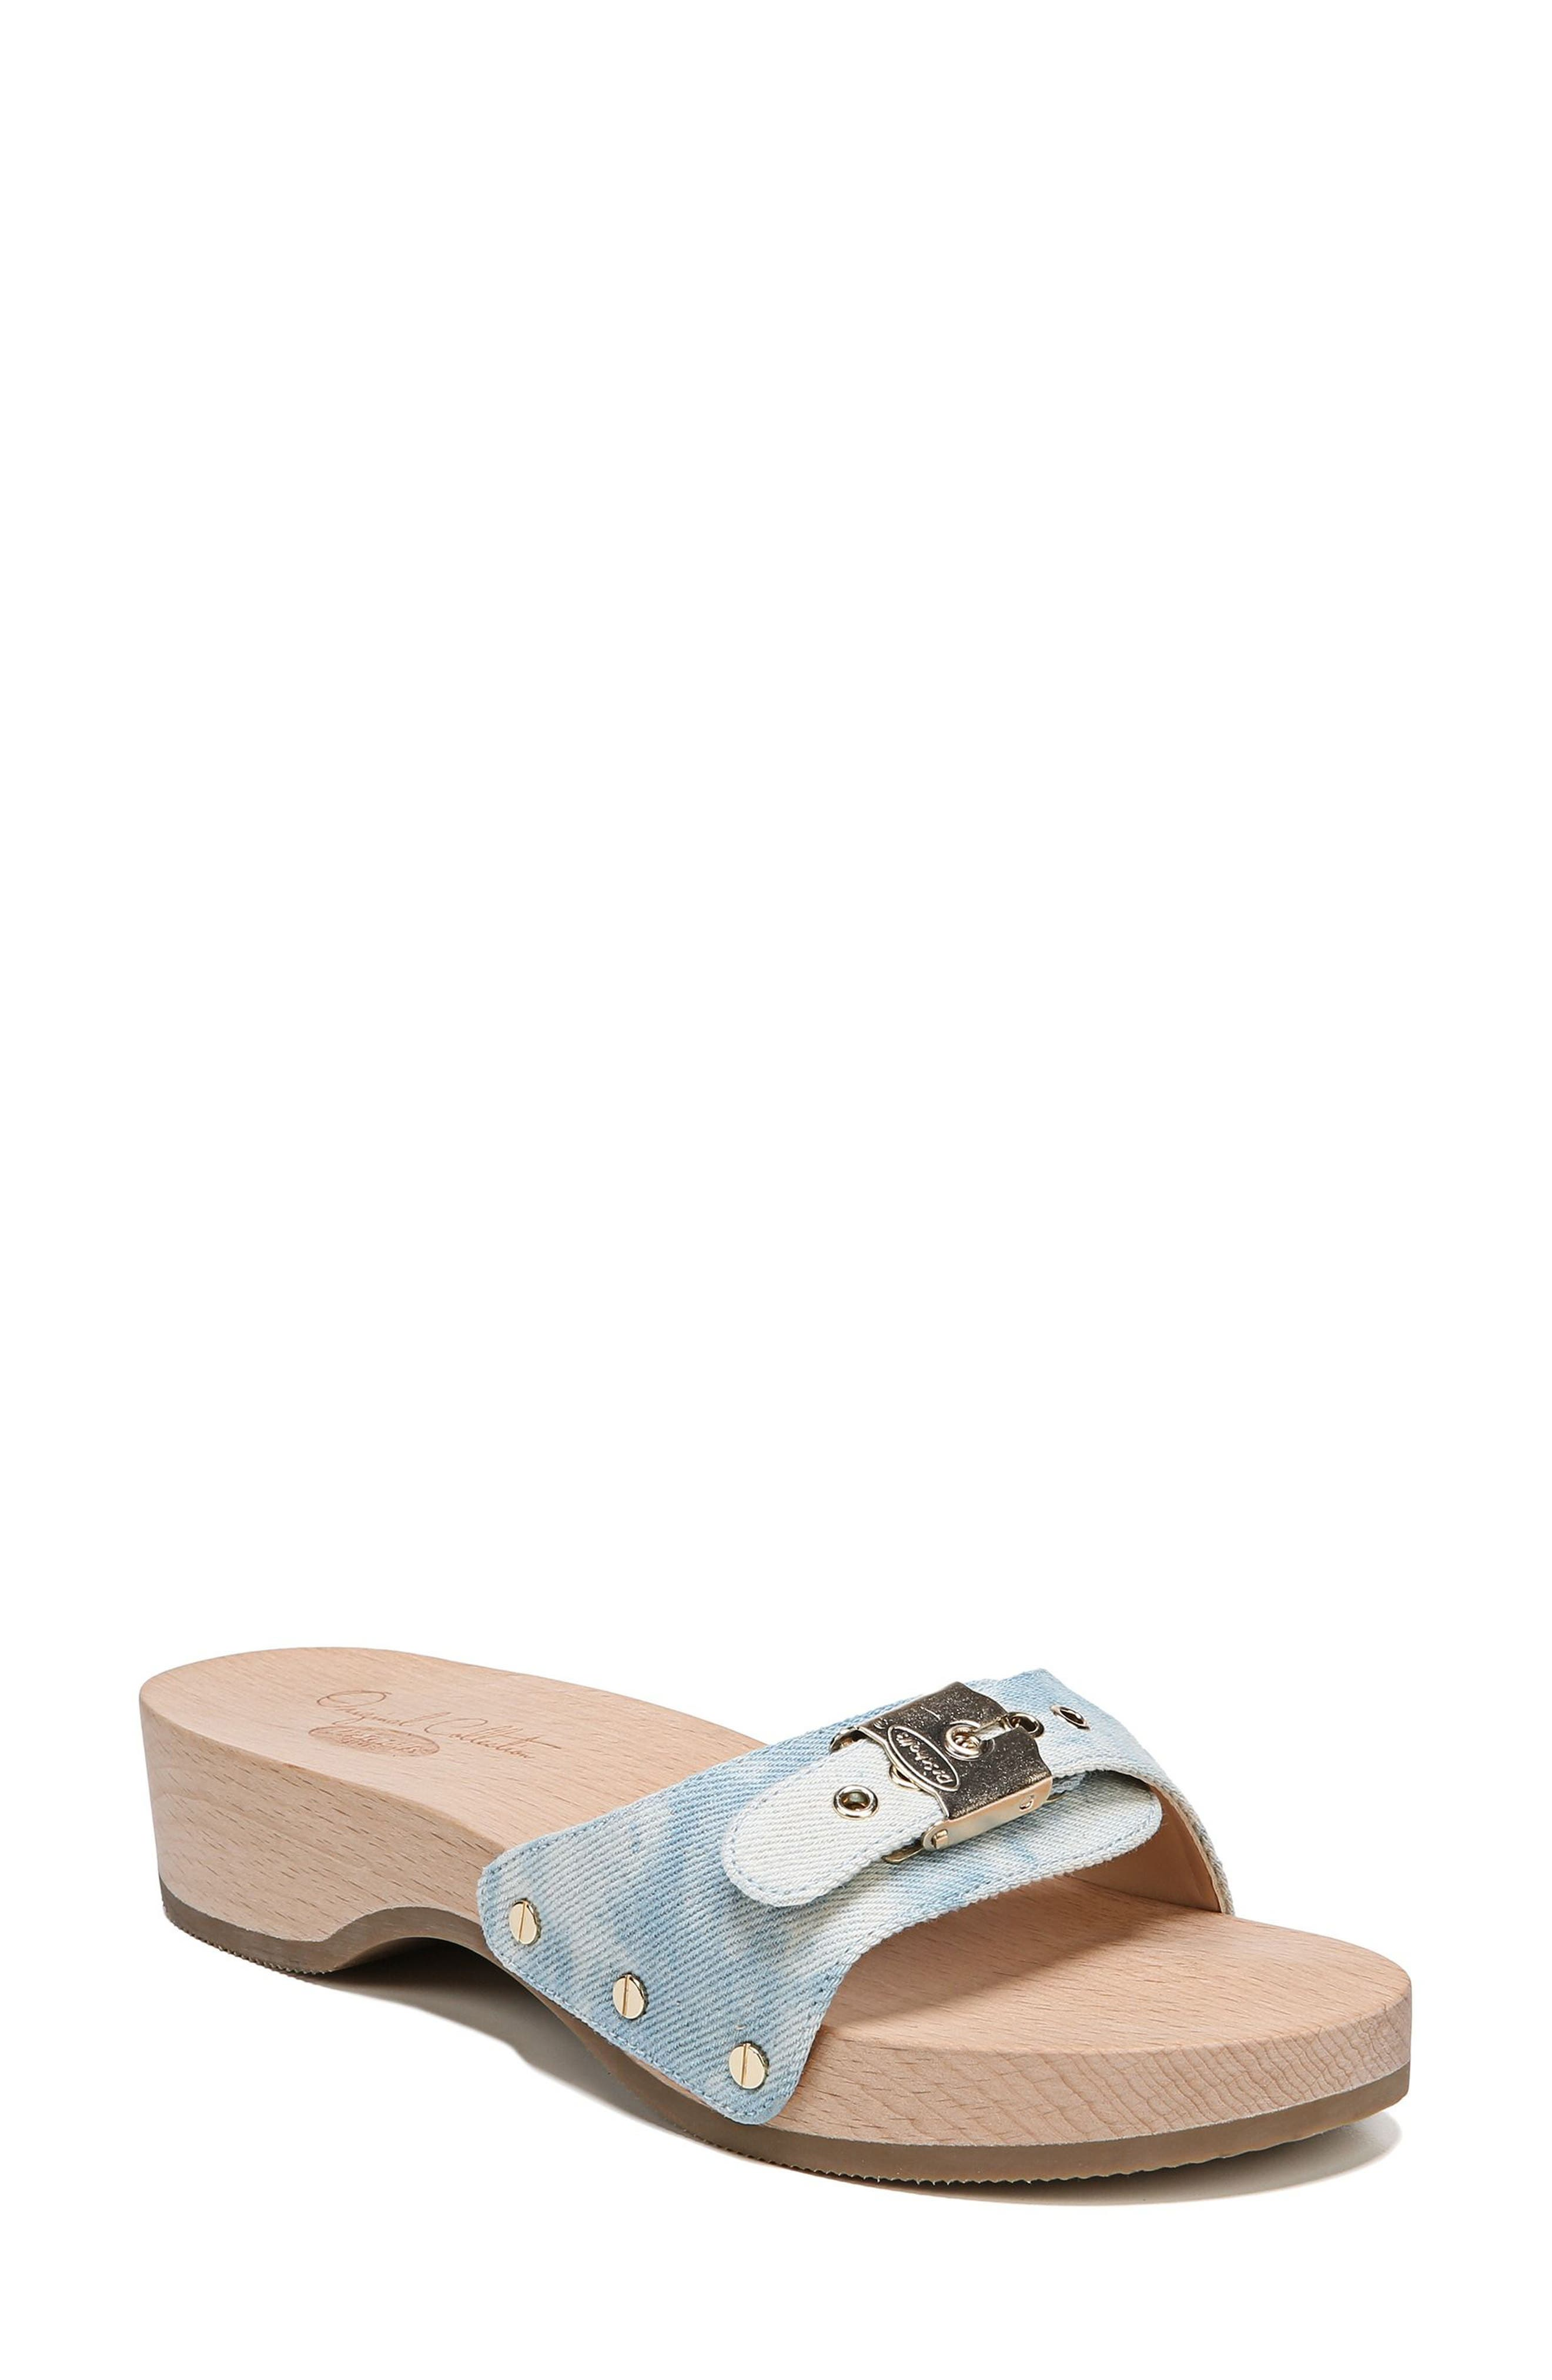 Original Collection 'Original Footbed' Sandal,                             Main thumbnail 1, color,                             DENIM FABRIC